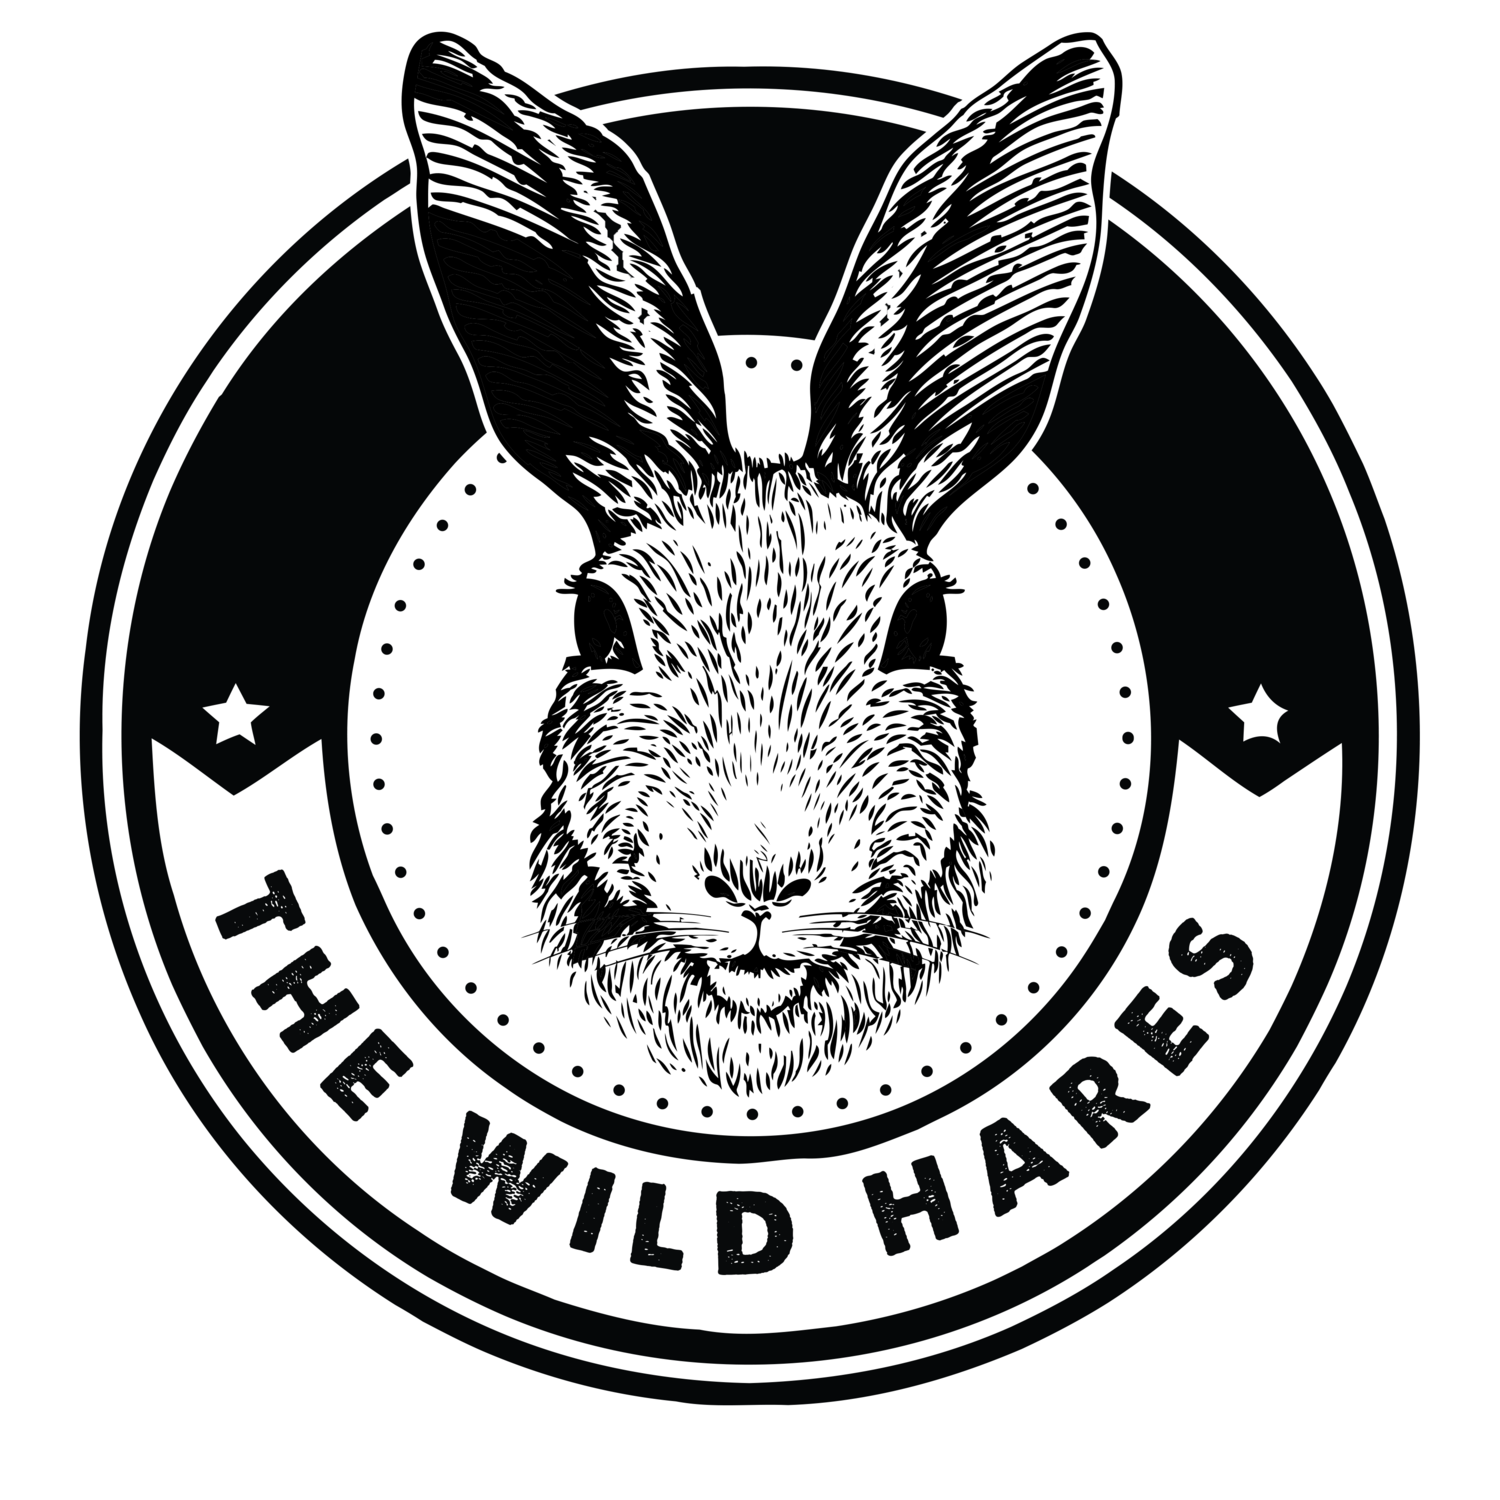 The Wild Hares